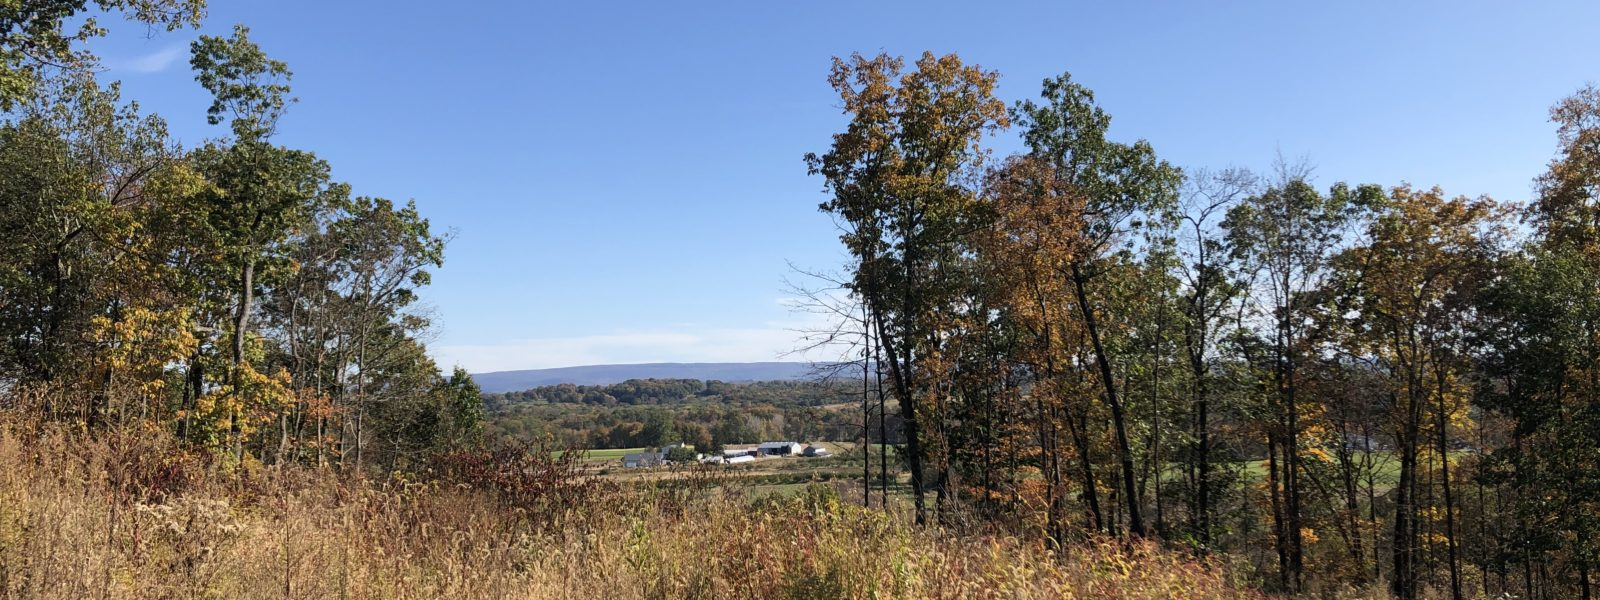 A view of the Hudson Valley and Sycamore Farms.